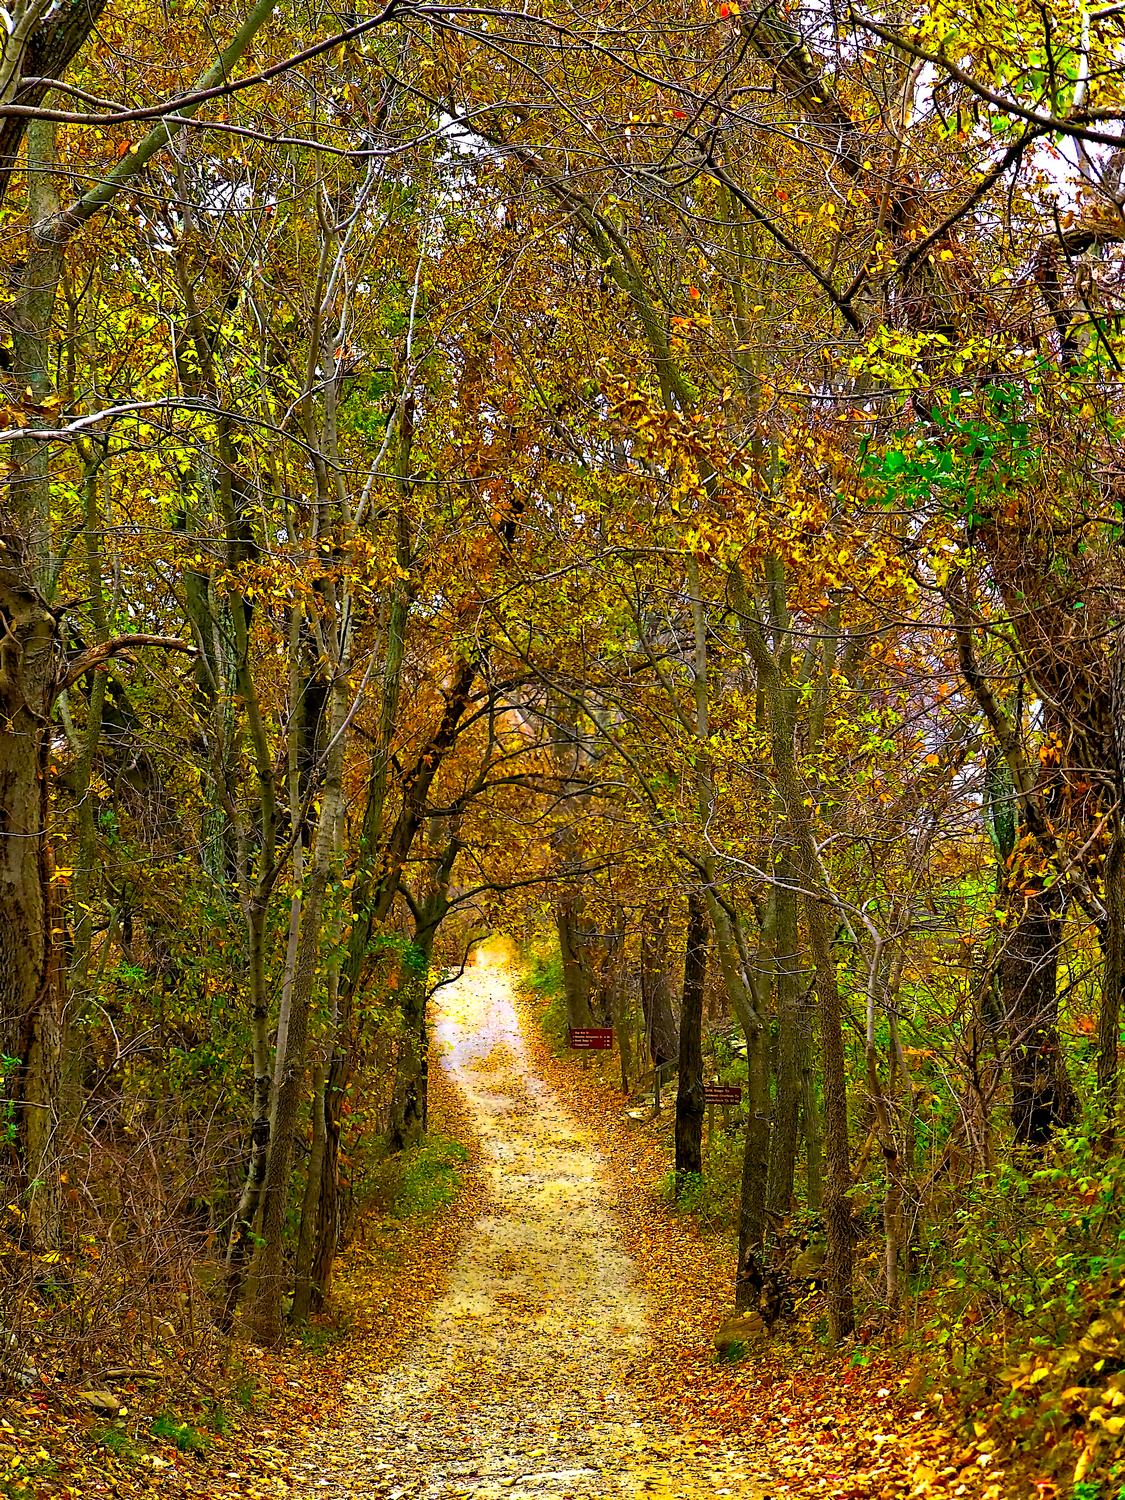 - A little further down the trail that leads to the big hill <br>--- Click to see ORIGINAL --- - Sky Meadows State park - Virginia - Cows - Panasonic DMC-ZS20 - Tony Karp, design, art, photography, techno-impressionist, techno-impressionism, aerial photography , drone , drones , dji , mavic pro , video , 3D printing - Books -